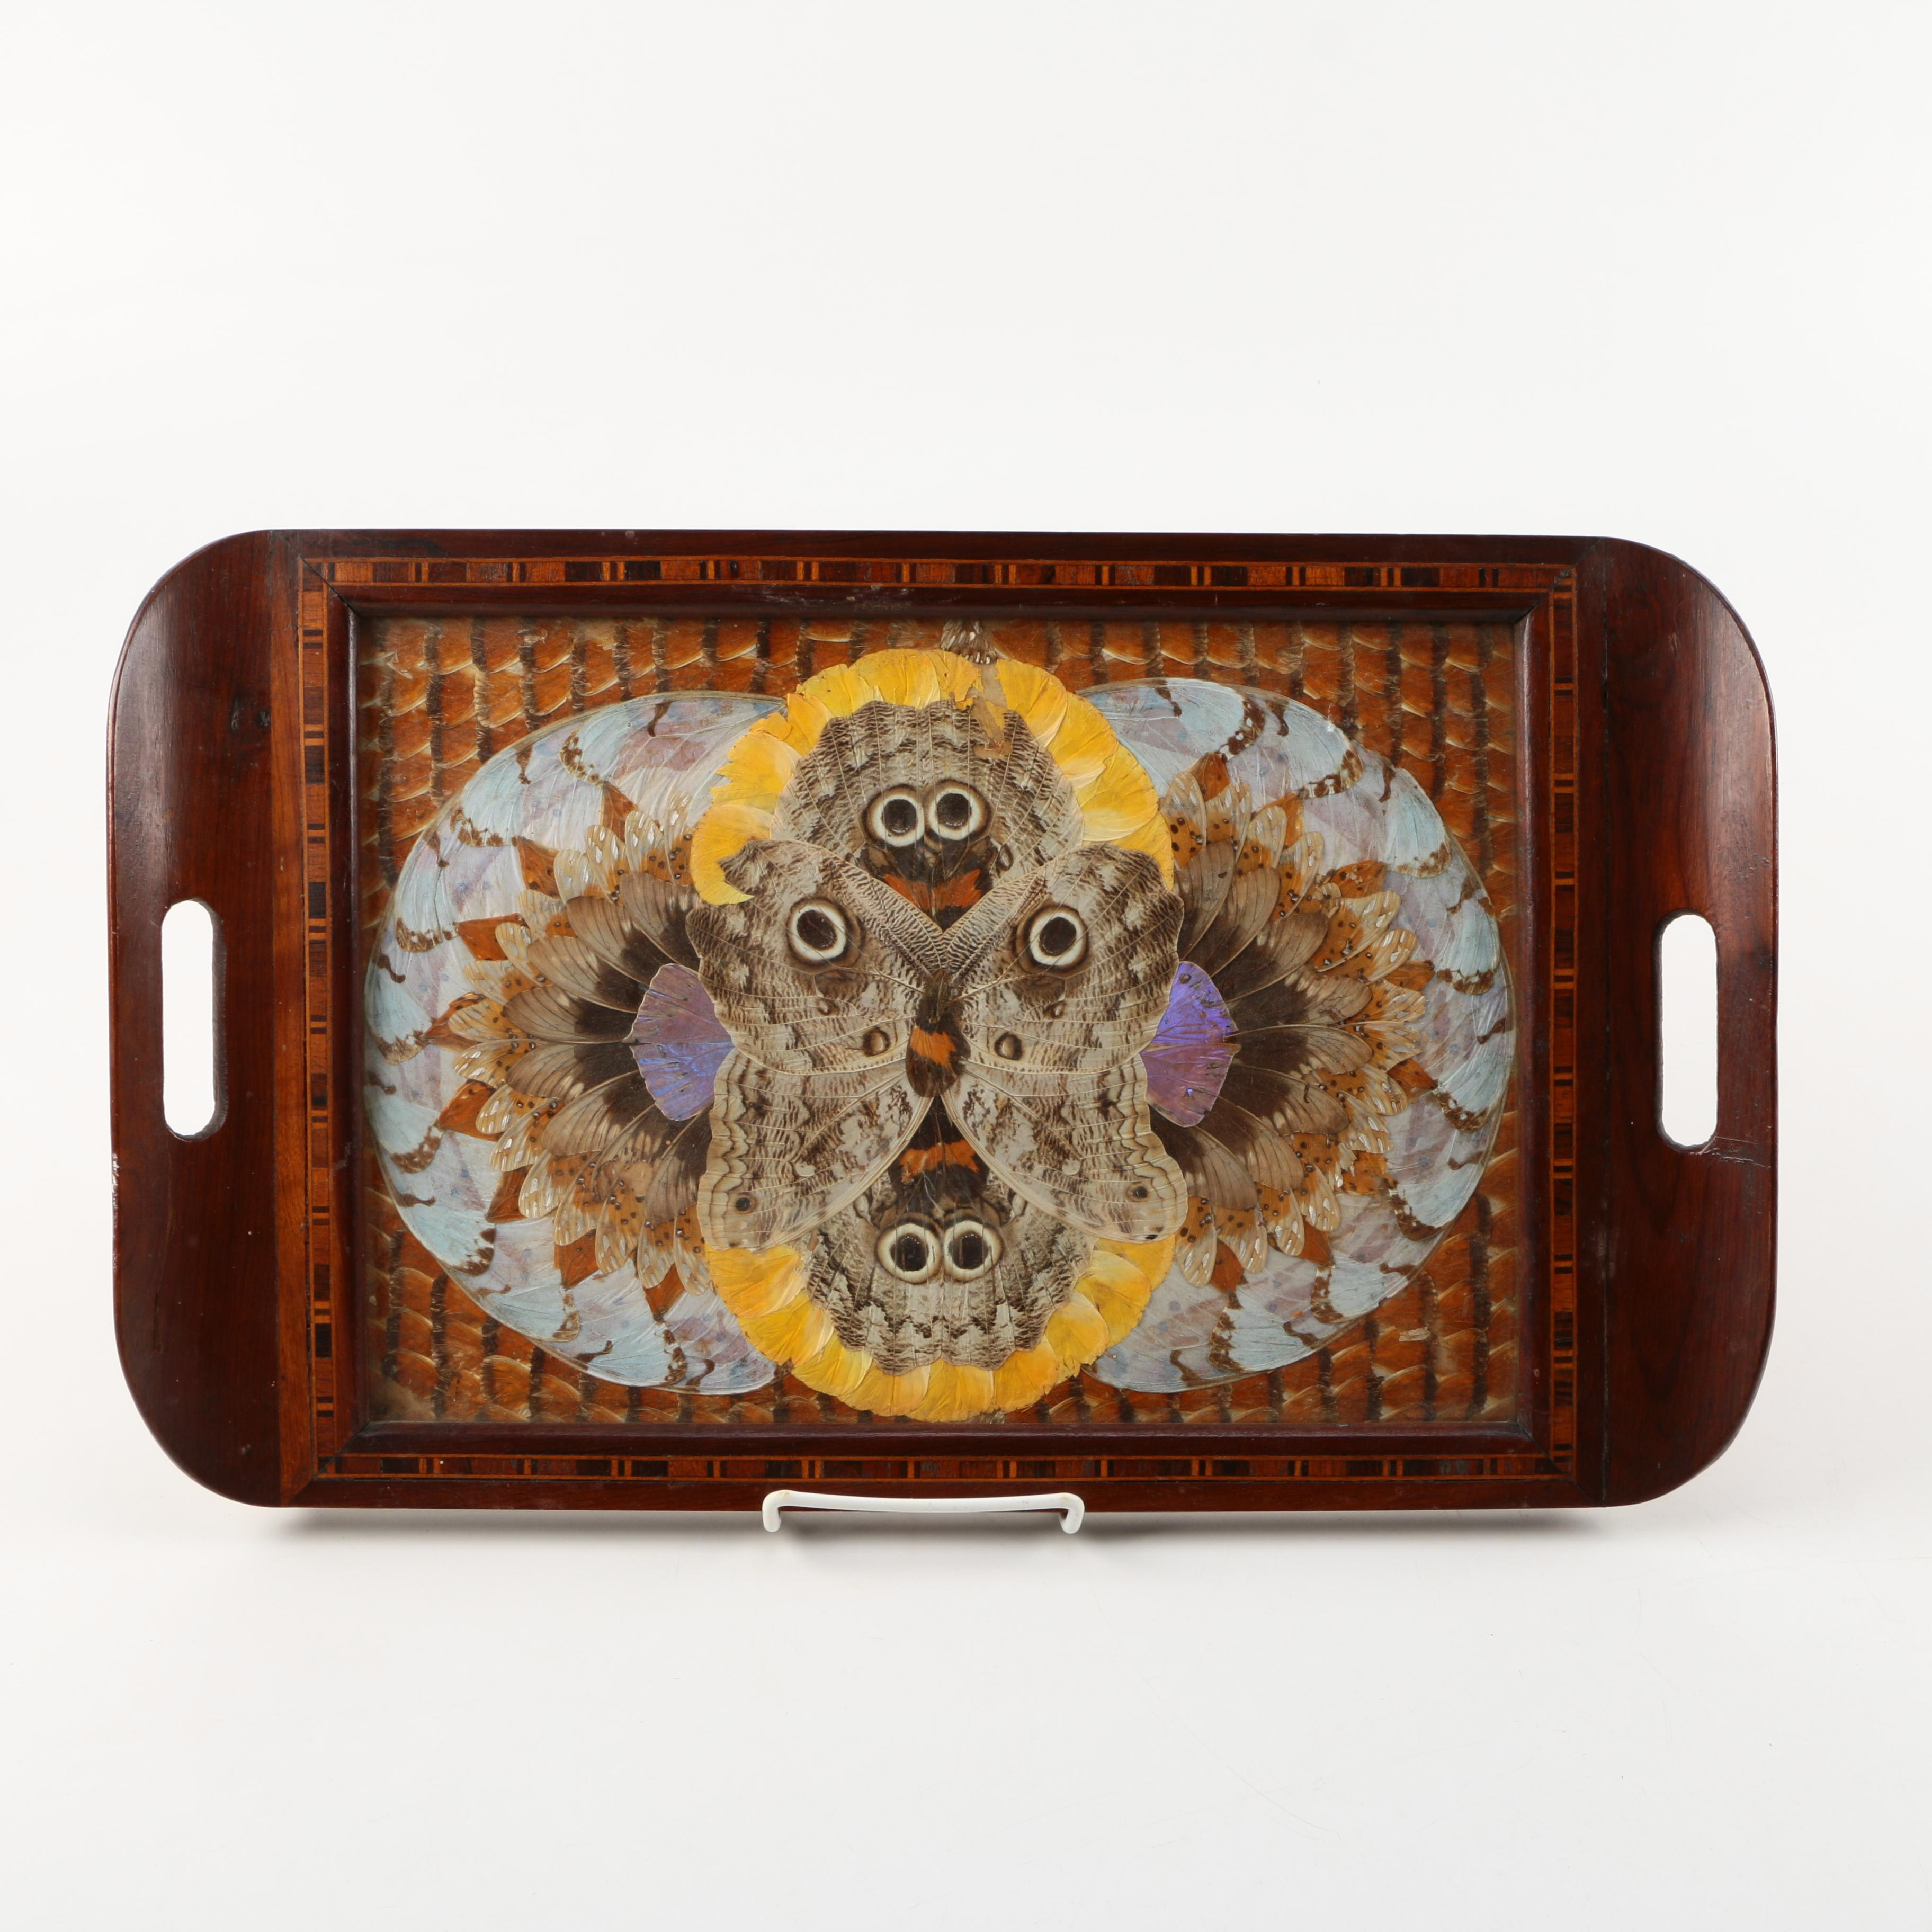 Wooden Tray With Moth Wing Motif